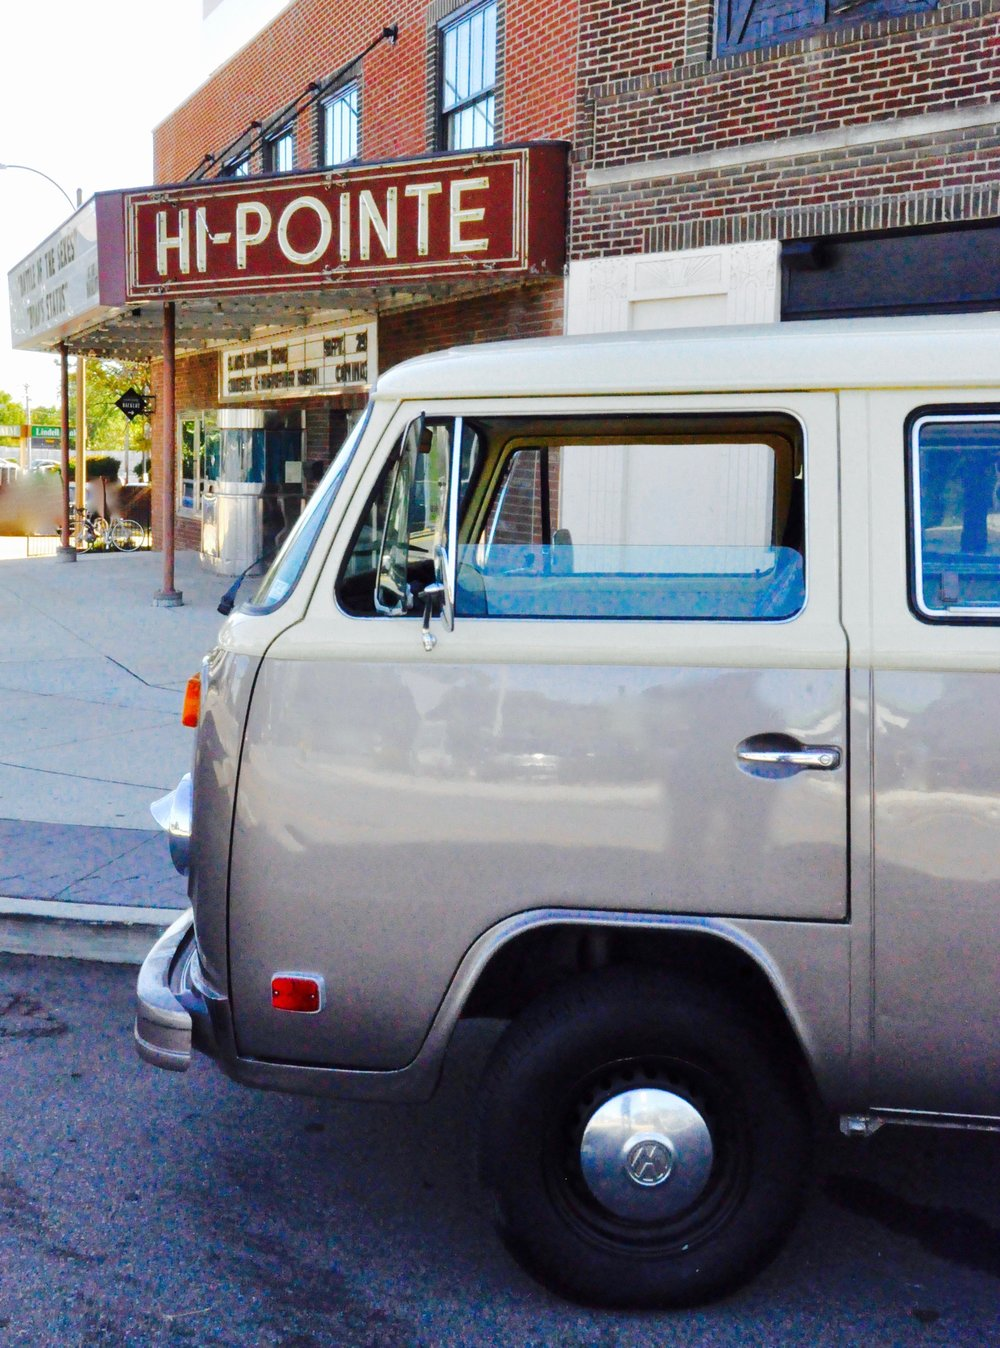 Hi-Pointe/ Dogtown -